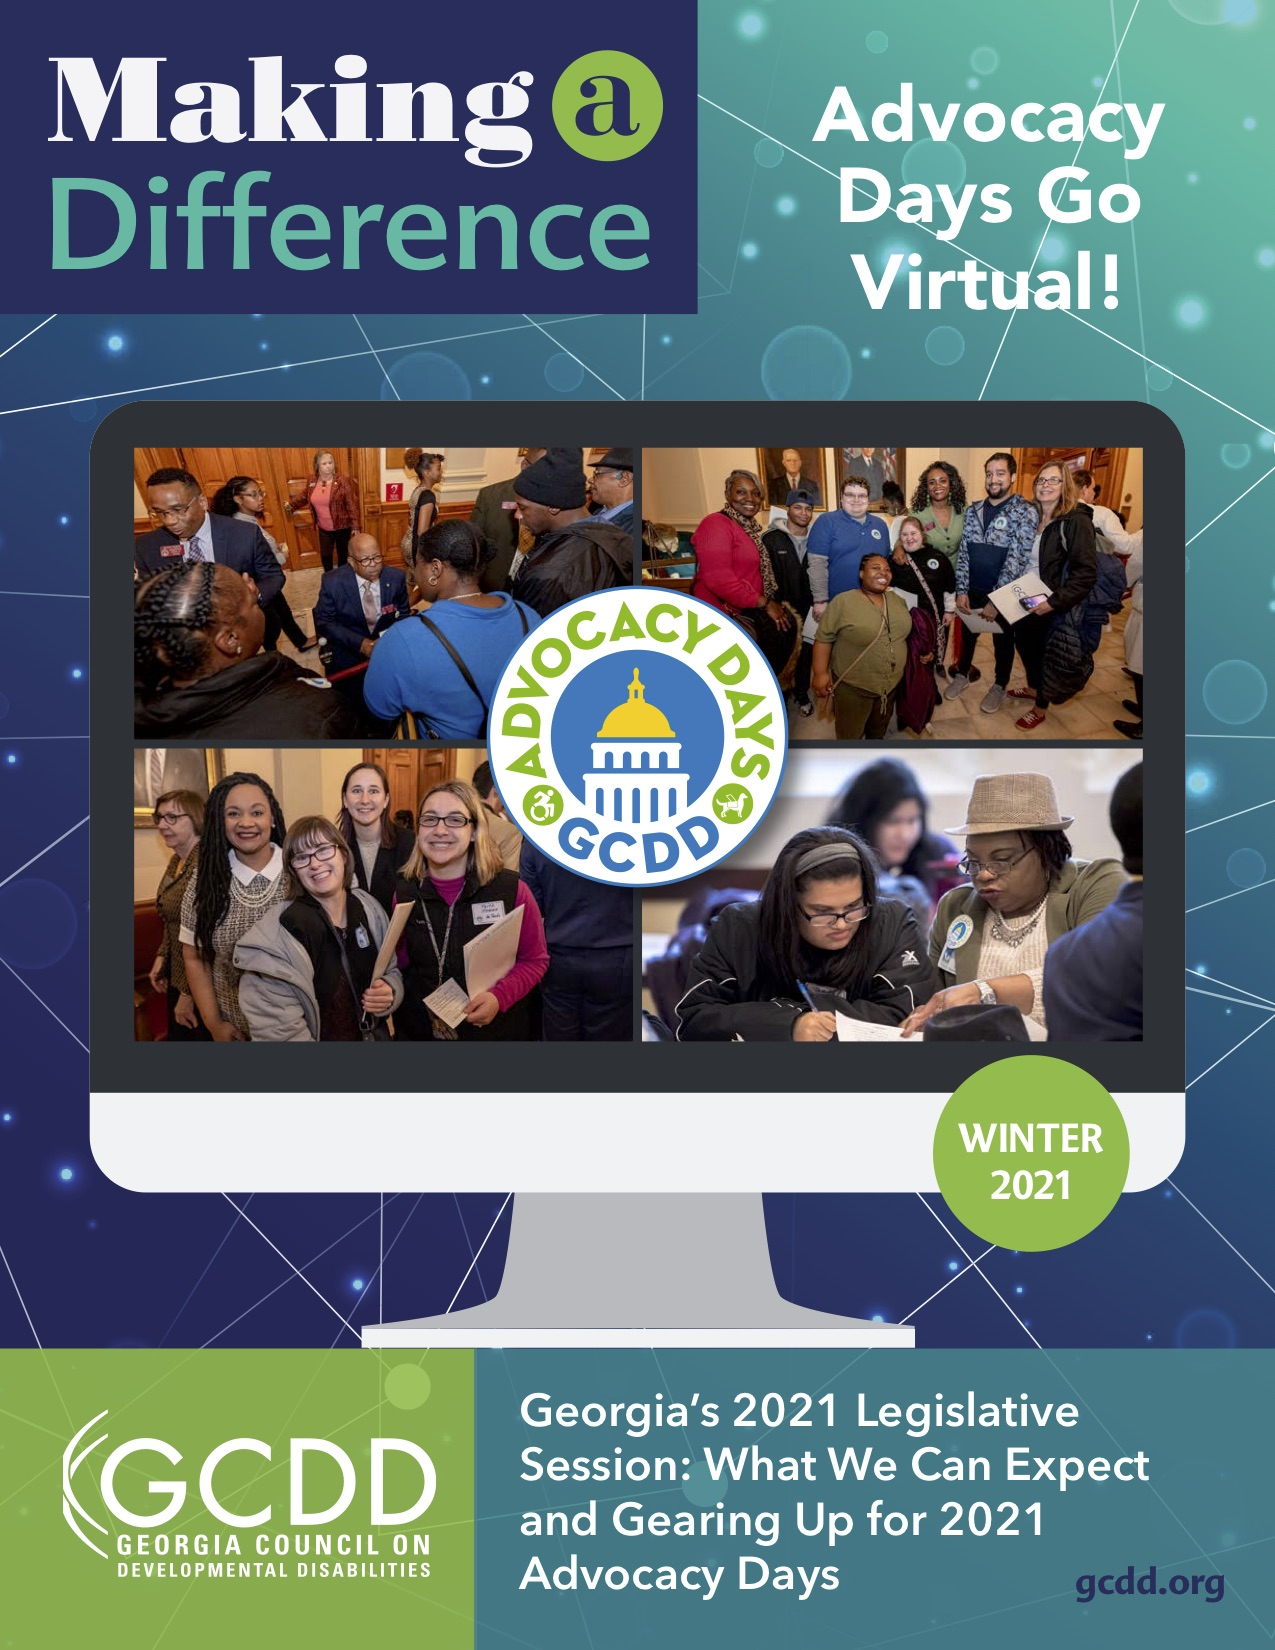 Image of a computer screen with four group pictures of diverse Georgians from previous advocacy days with a logo